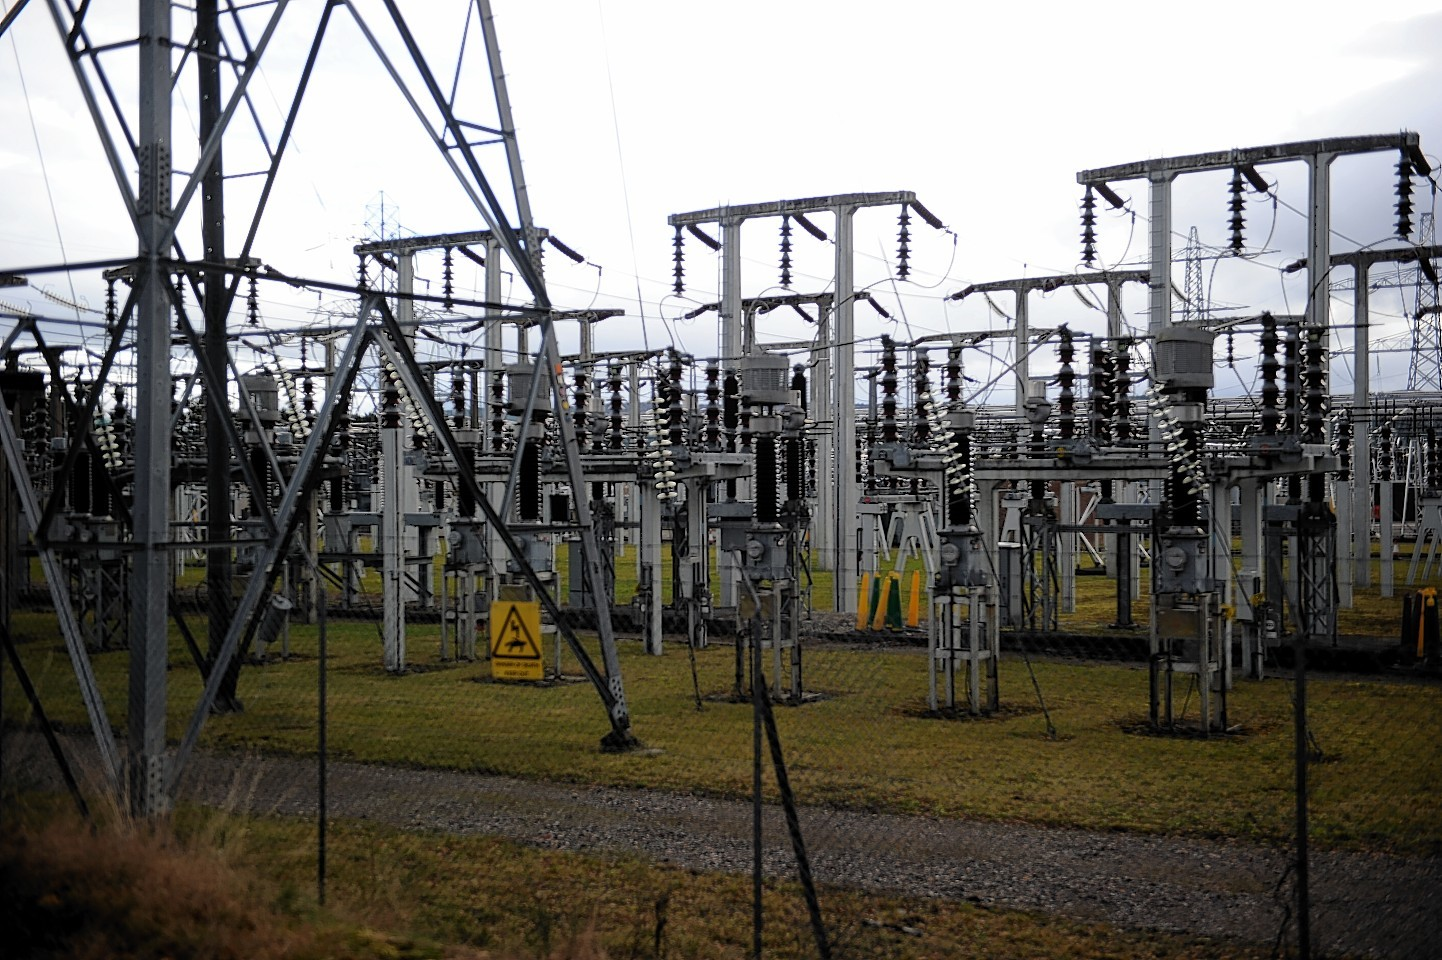 The electricity sub-station at Wester Balblair.